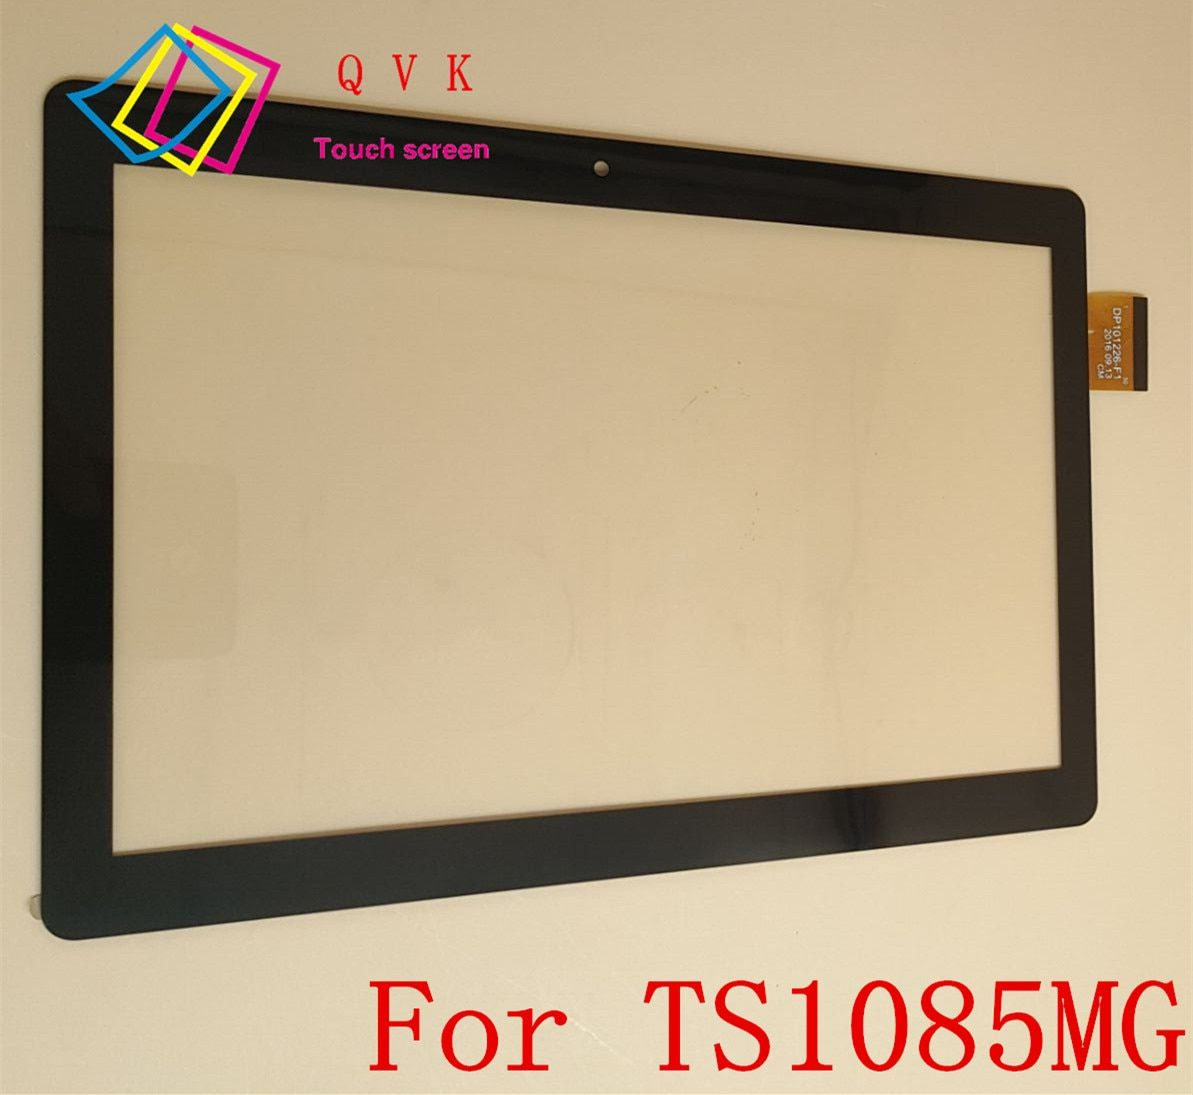 10,1 zoll Für Digma Optima 1507/Flugzeug 1505 3G TS1085MG tablet pc kapazitiver touch screen glas digitizer panel